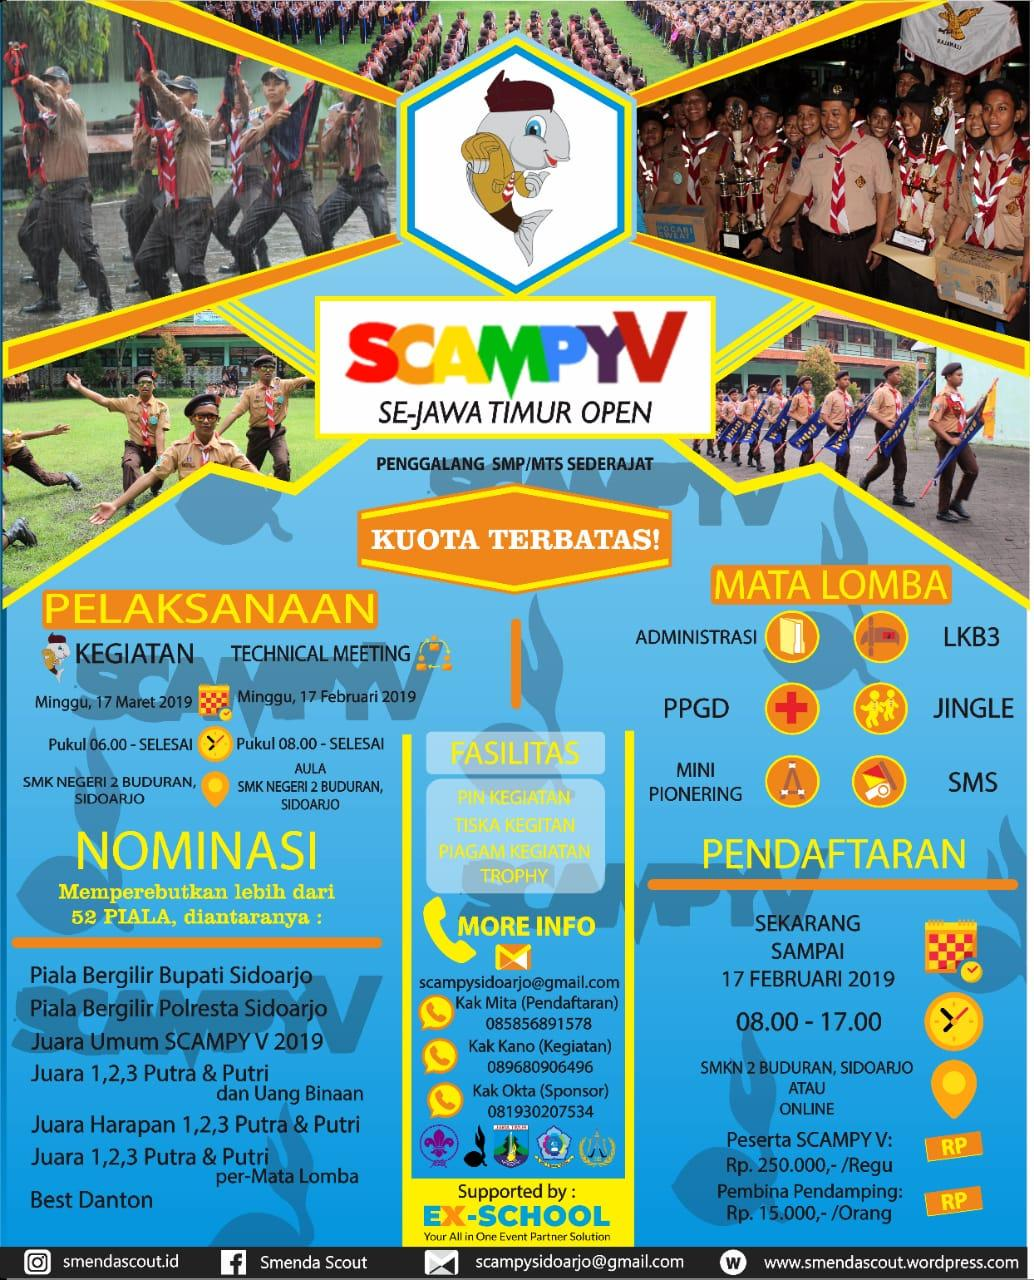 SCAMPY V 2019 JAWA TIMUR OPEN